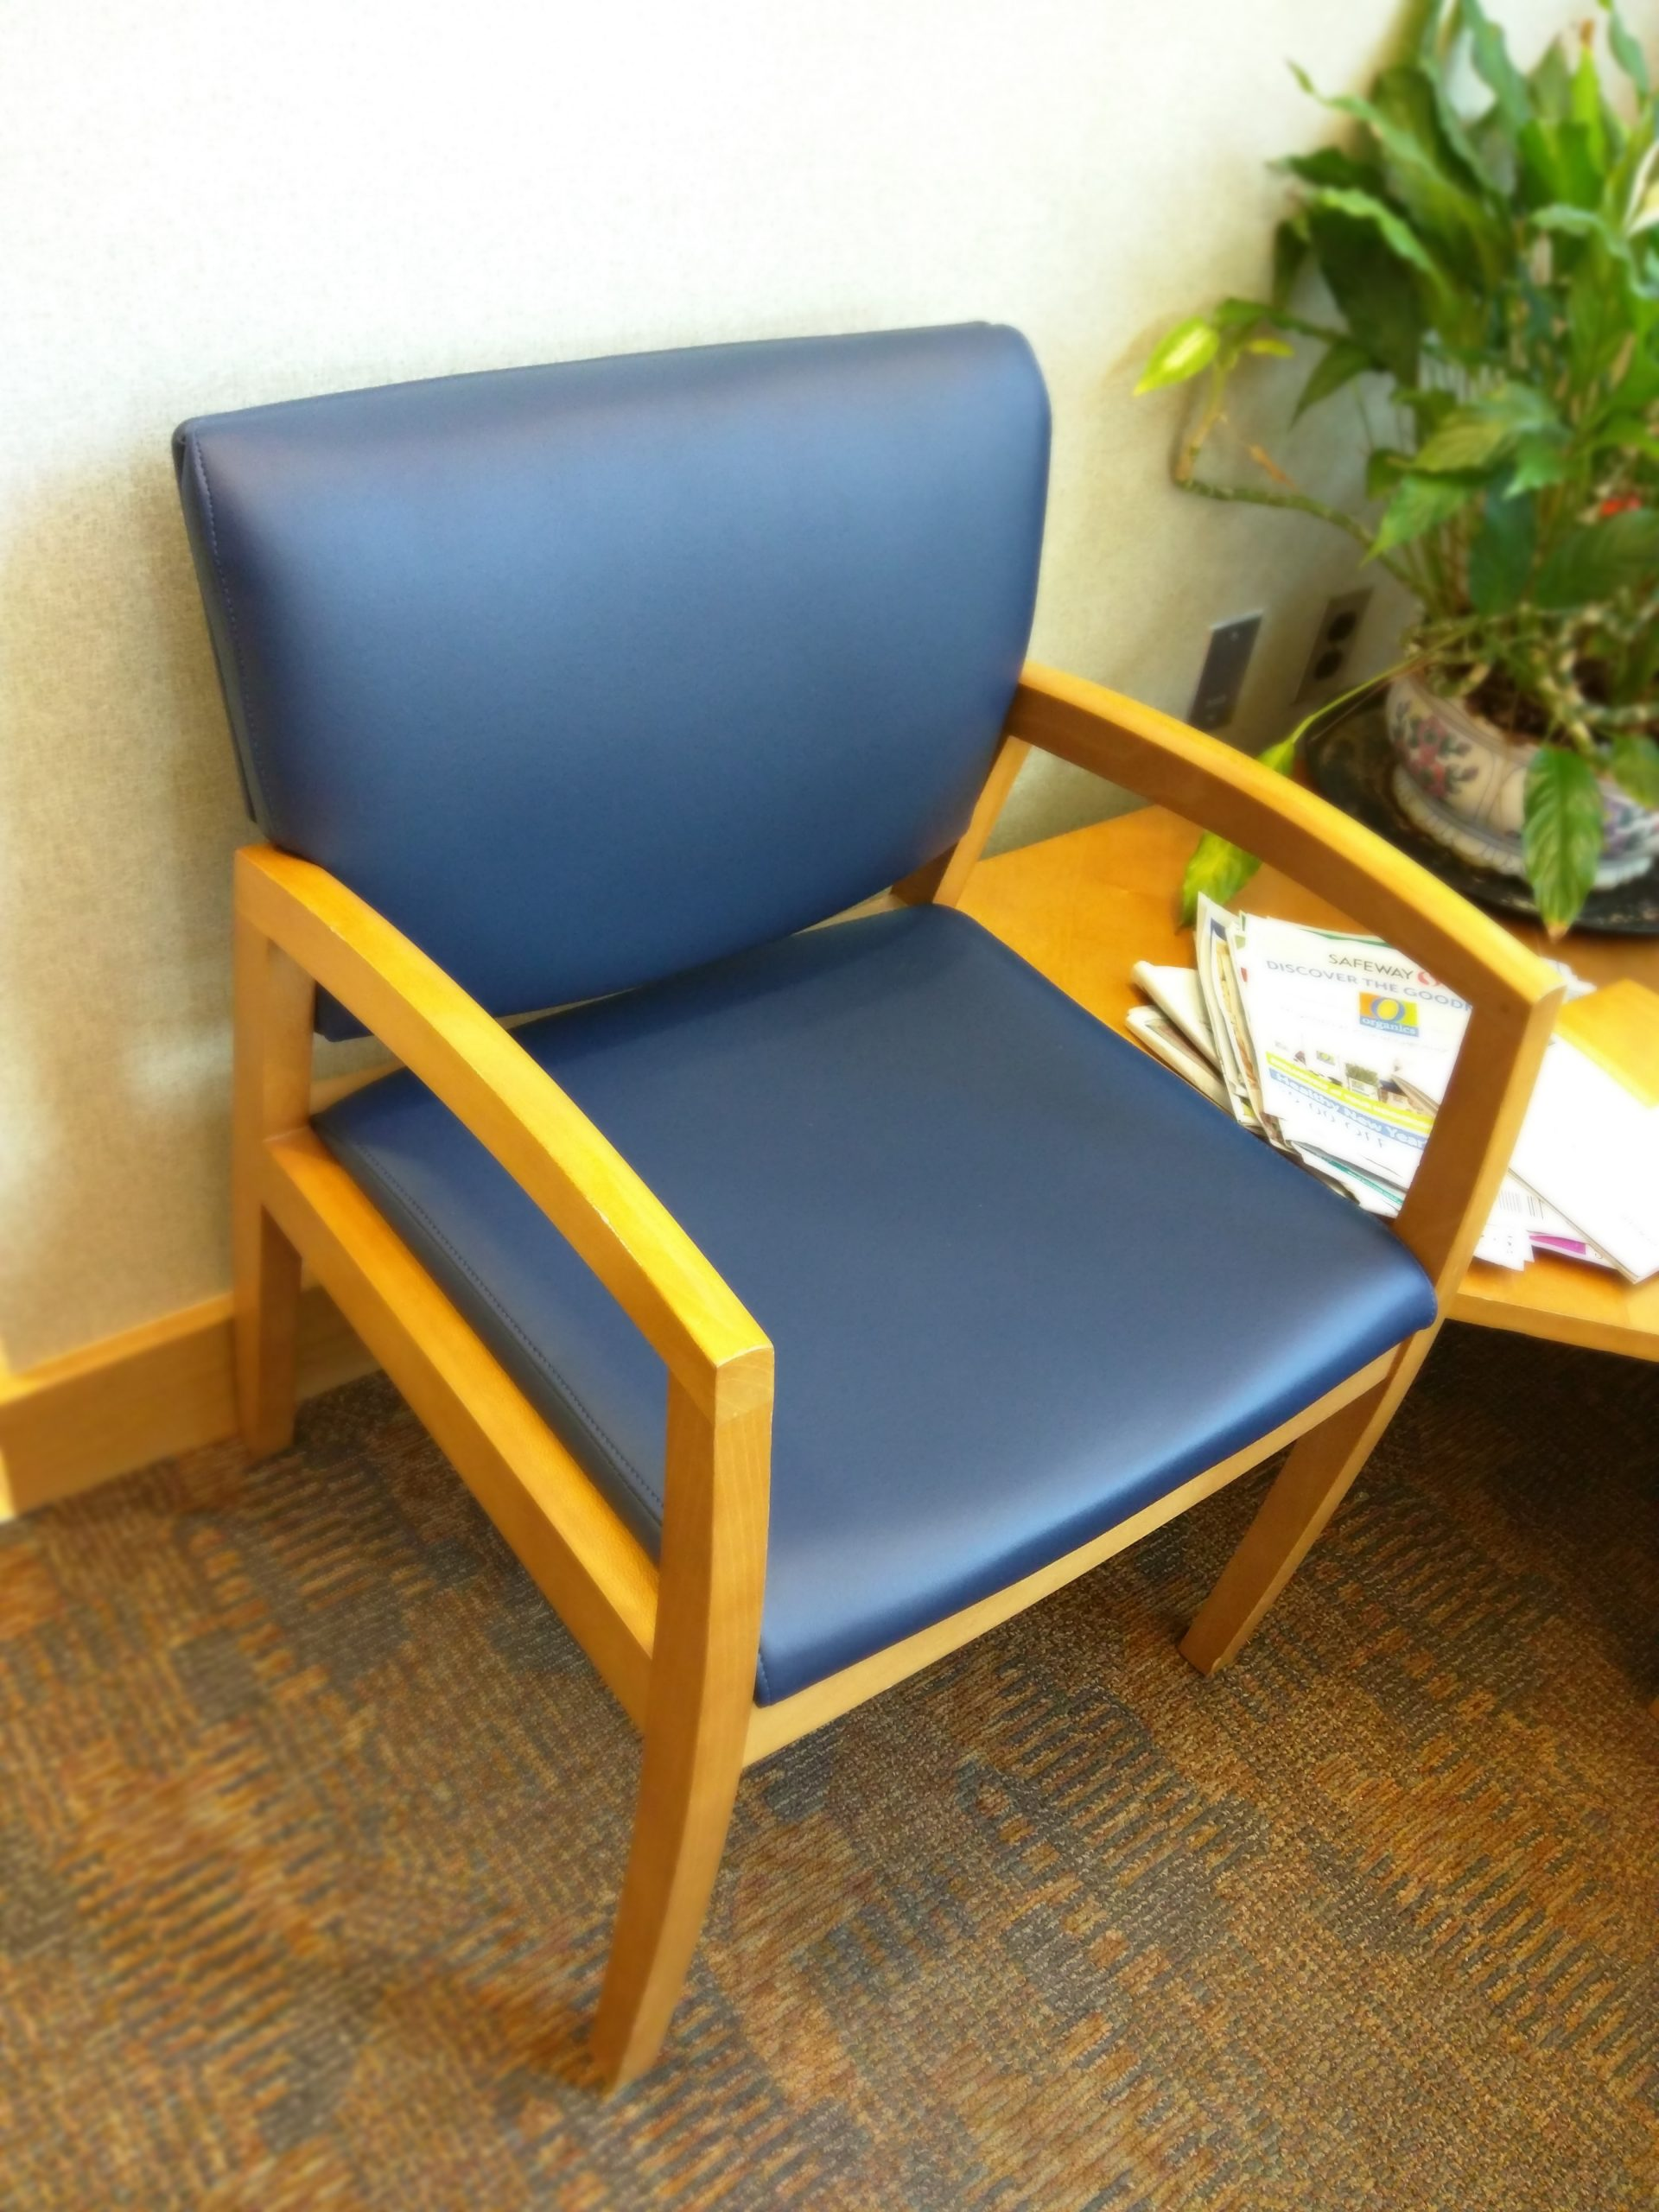 Waiting Room Lobby Chair Seat Upholstered n Olympus Majestic